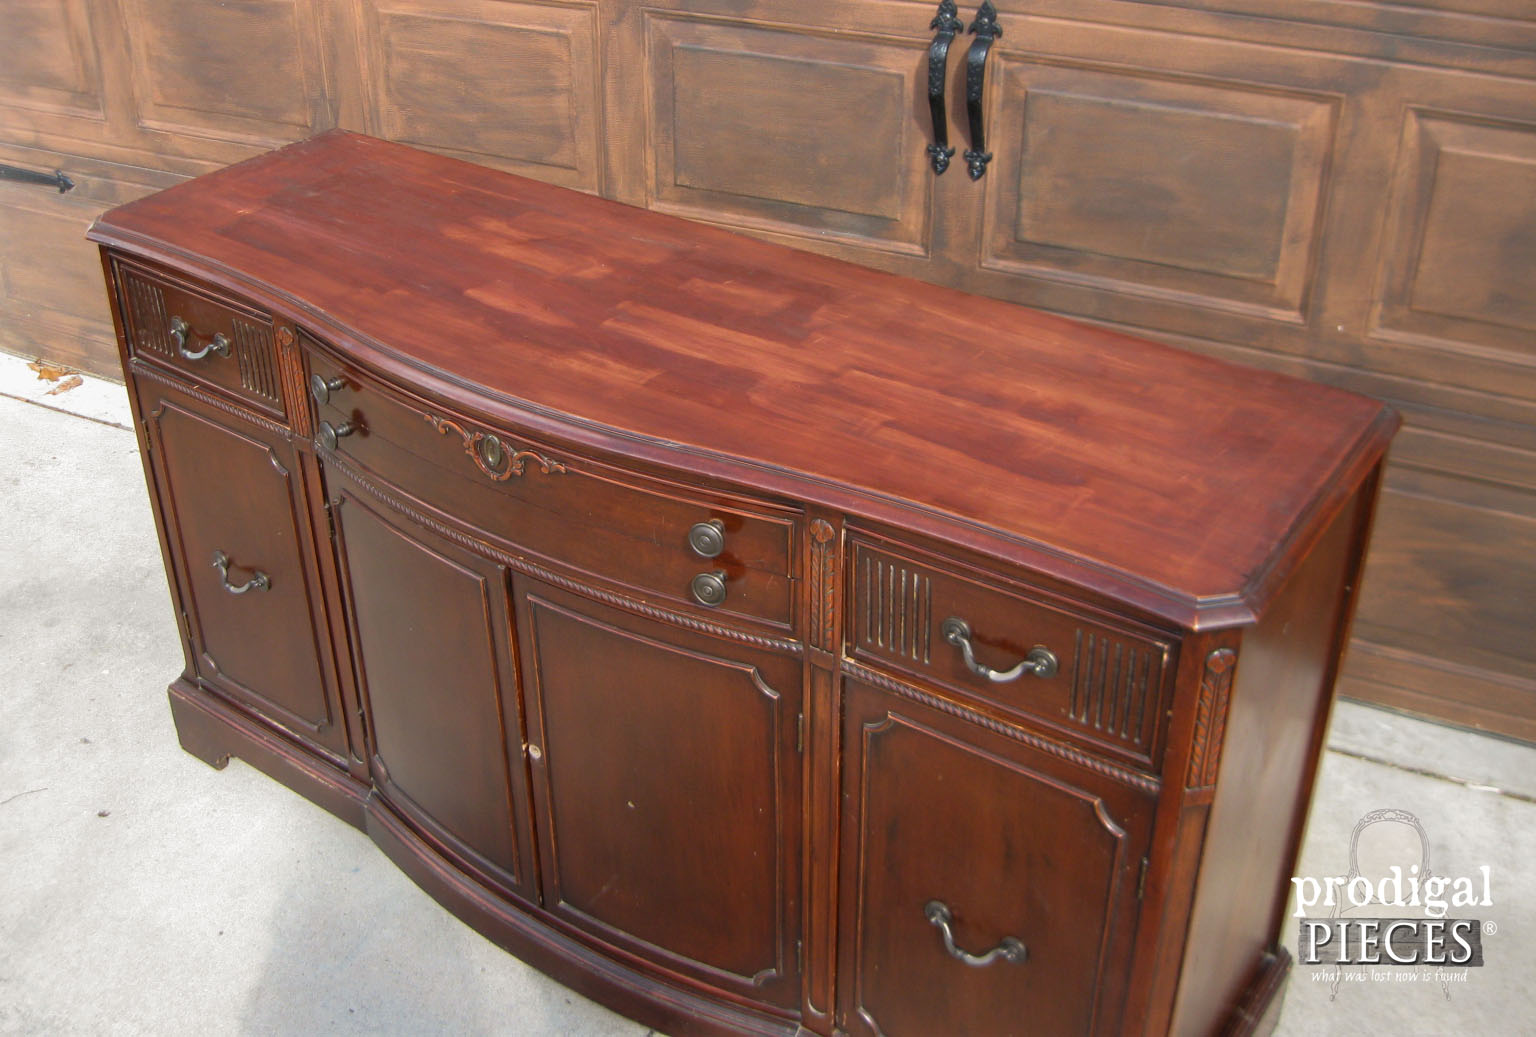 Damaged Top of Vintage Buffet | Prodigal Pieces | www.prodigalpieces.com